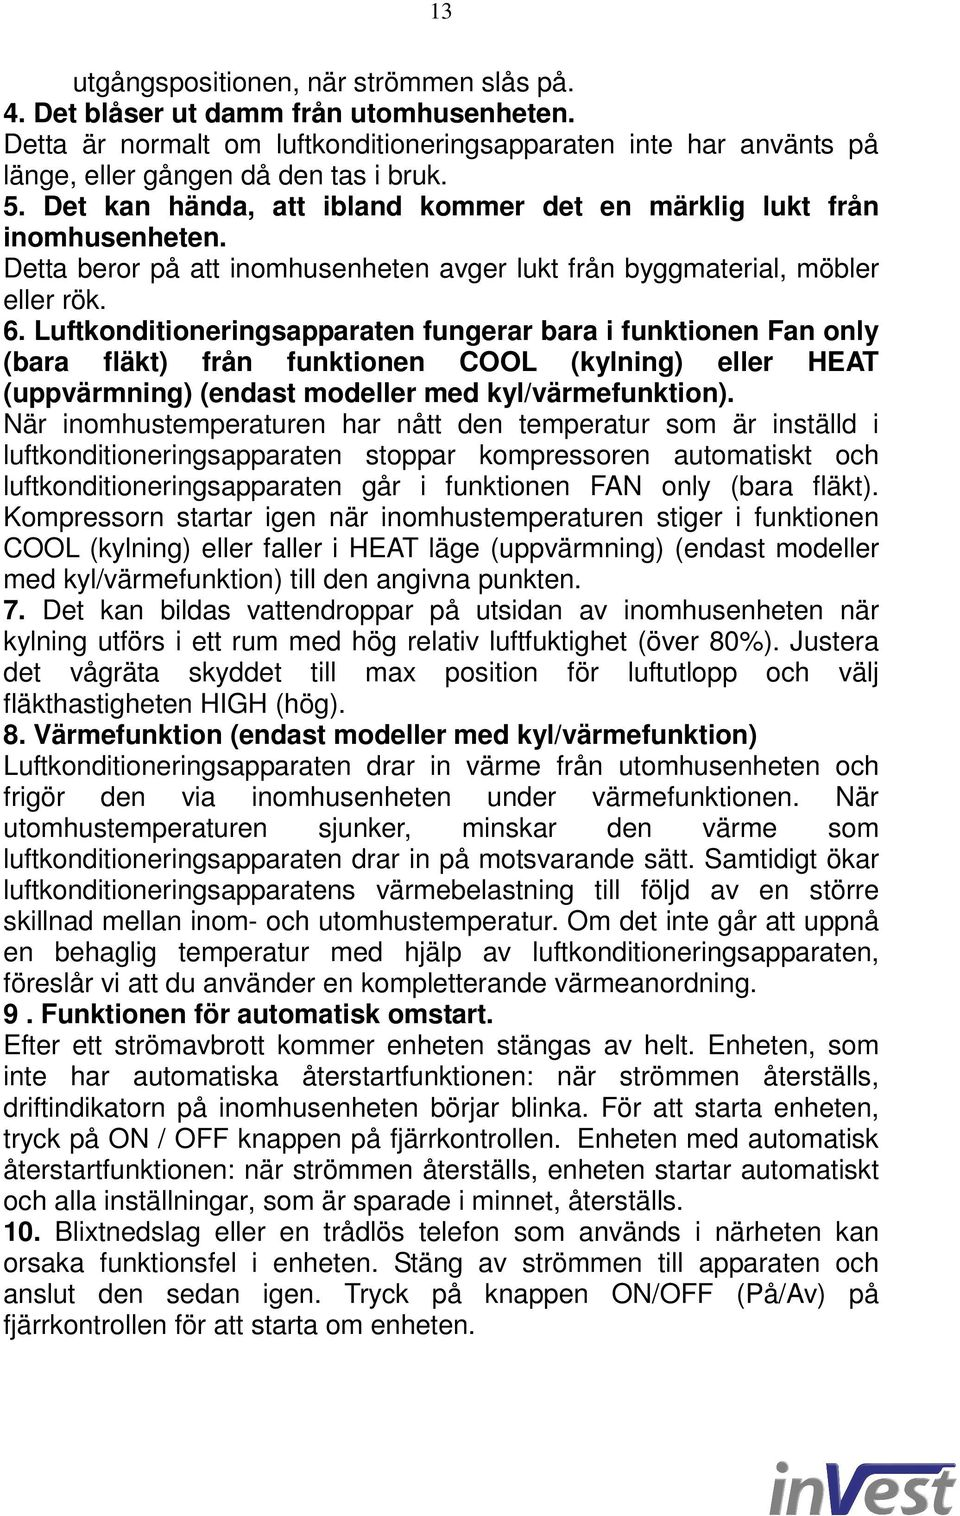 Luftkonditioneringsapparaten fungerar bara i funktionen Fan only (bara fläkt) från funktionen COOL (kylning) eller HEAT (uppvärmning) (endast modeller med kyl/värmefunktion).